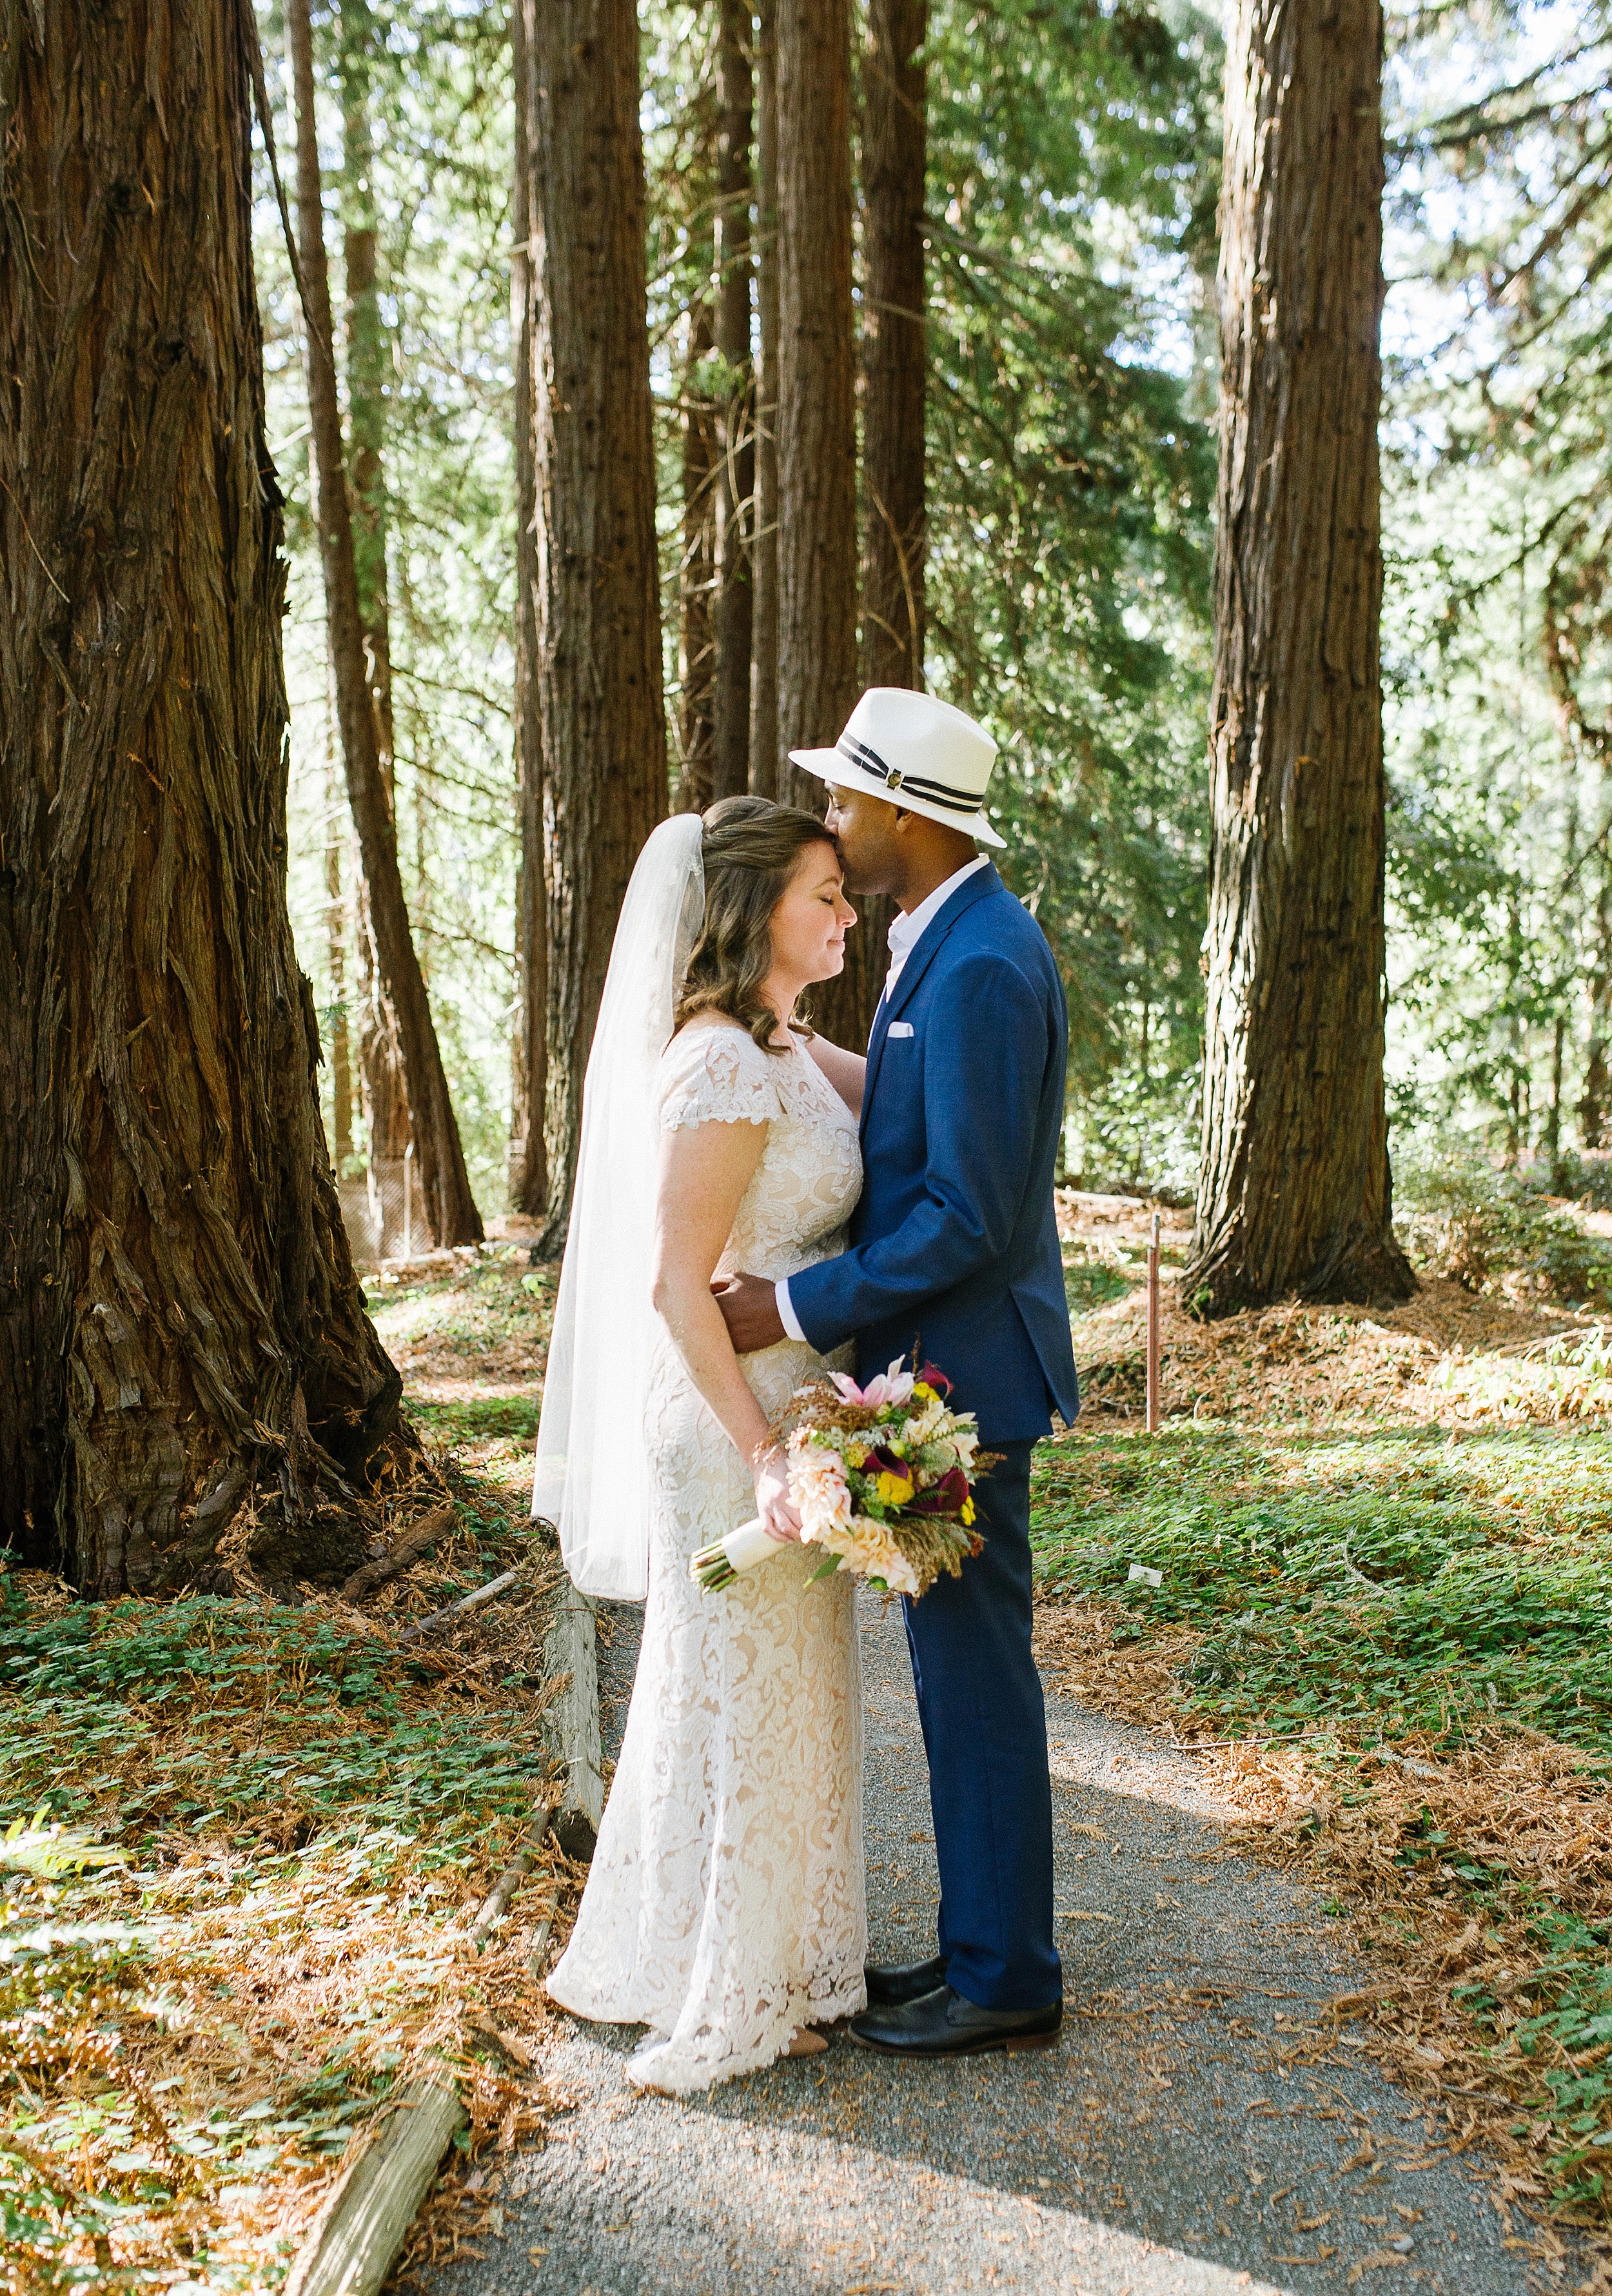 ucberkeley_botanical_redwoods_outdoor_wedding_jennyrez_cdp_0003.jpg